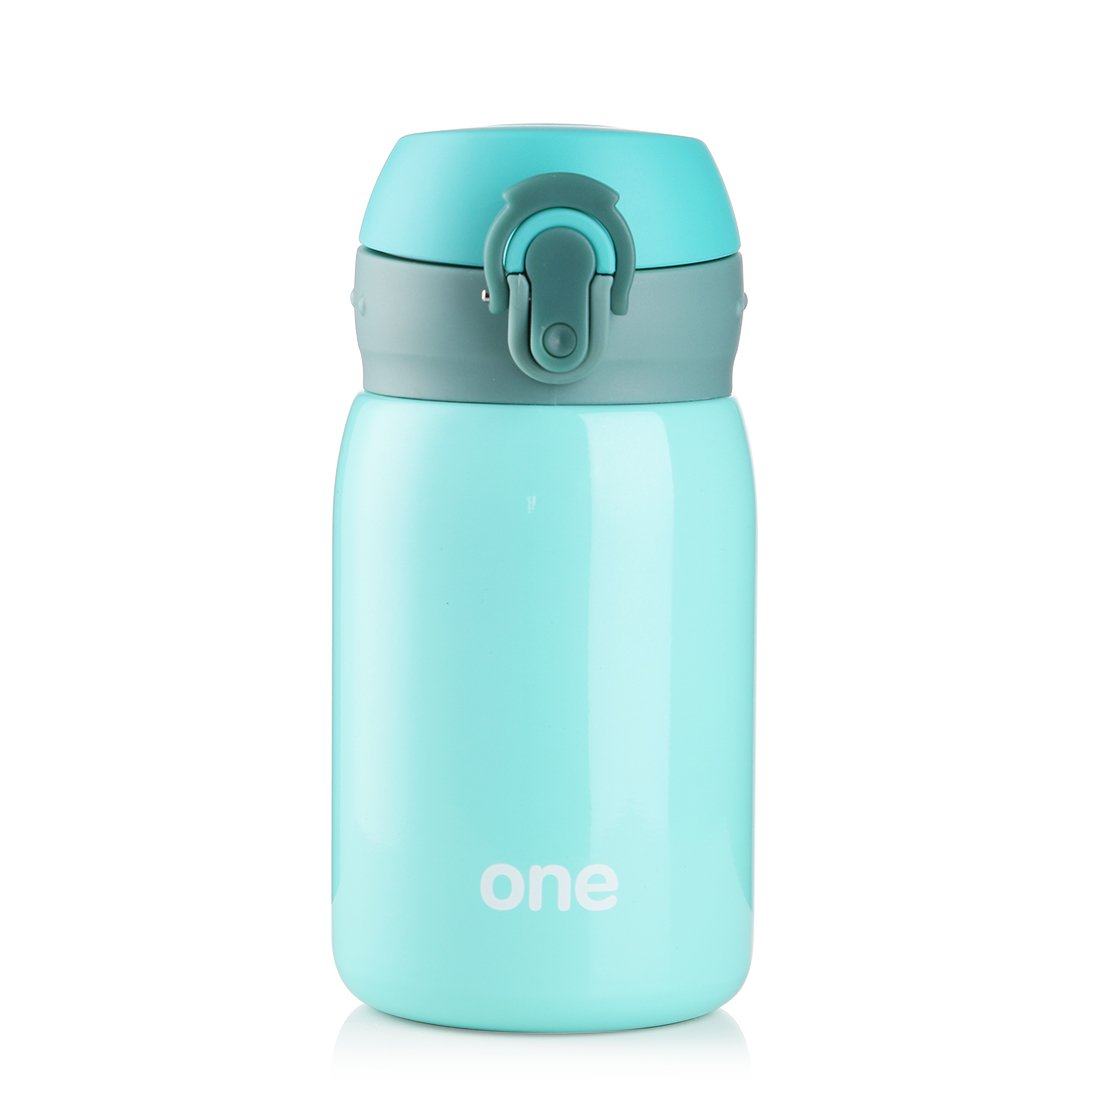 Kid&Girls 260ml/9oz Mini Insulated Water Bottle Drink Thermos Cute Stainless Steel Vacuum Flask,Leak-proof Travel Mug Coffee Tumbler (Green)